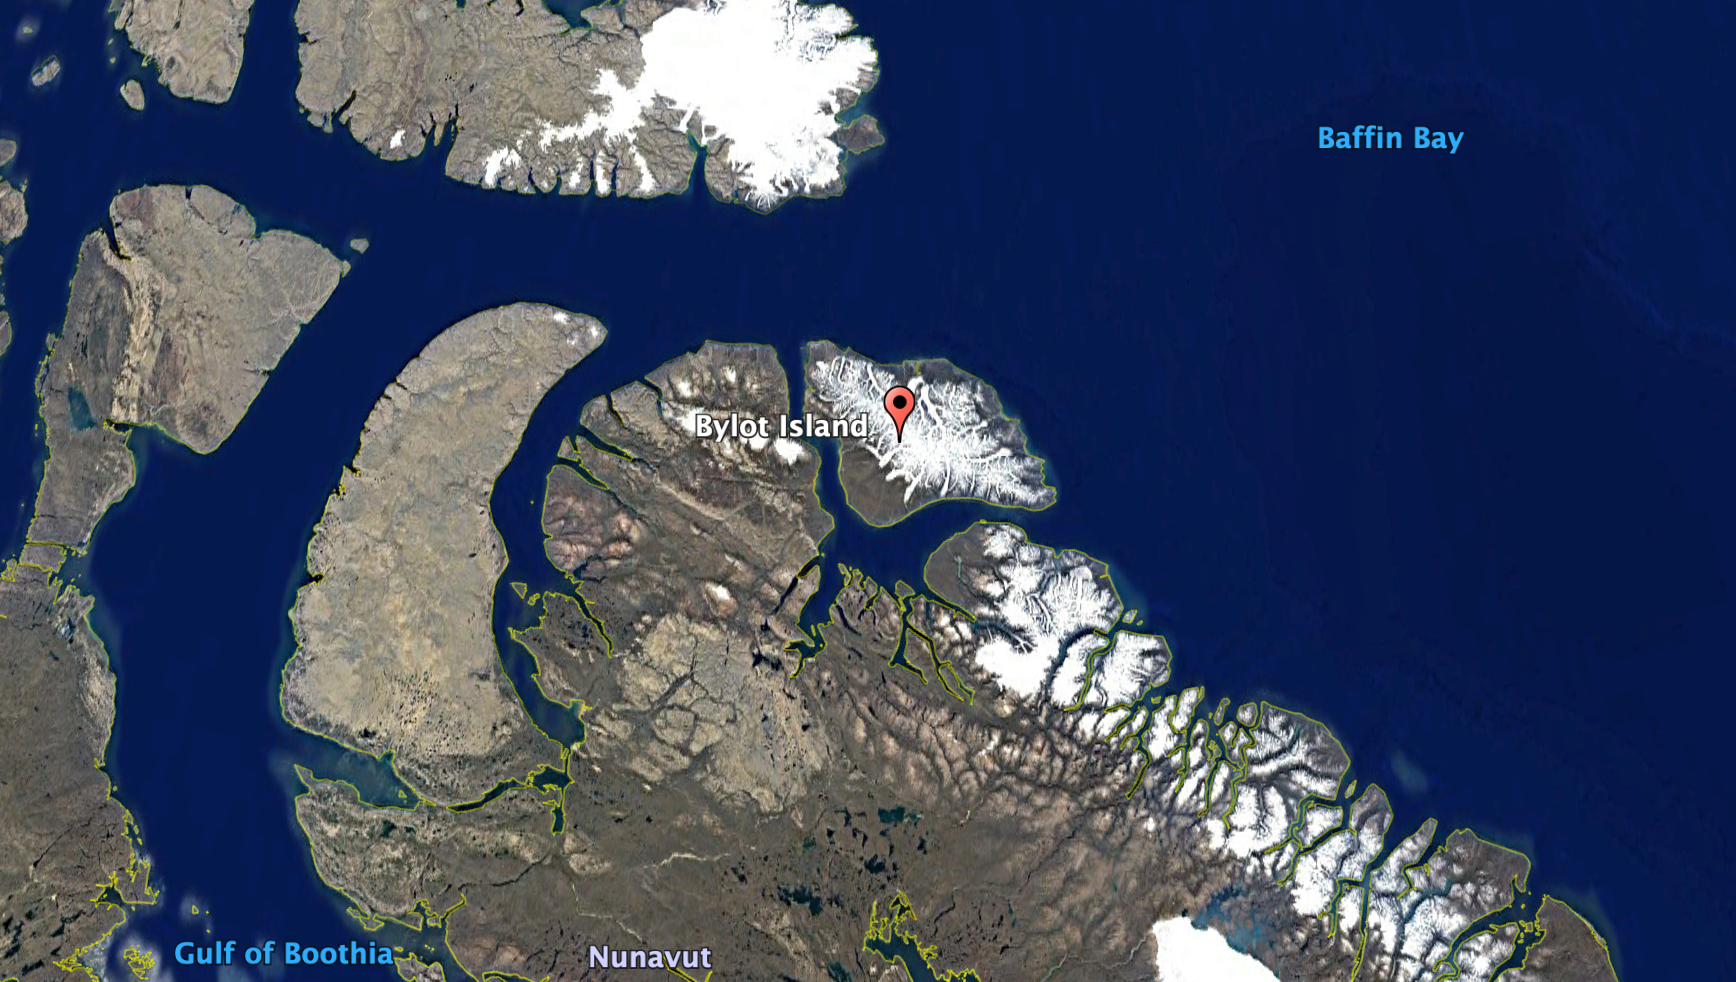 Bylot Island, where the Hawk Mountain team tagged and tracked several snowy owls.